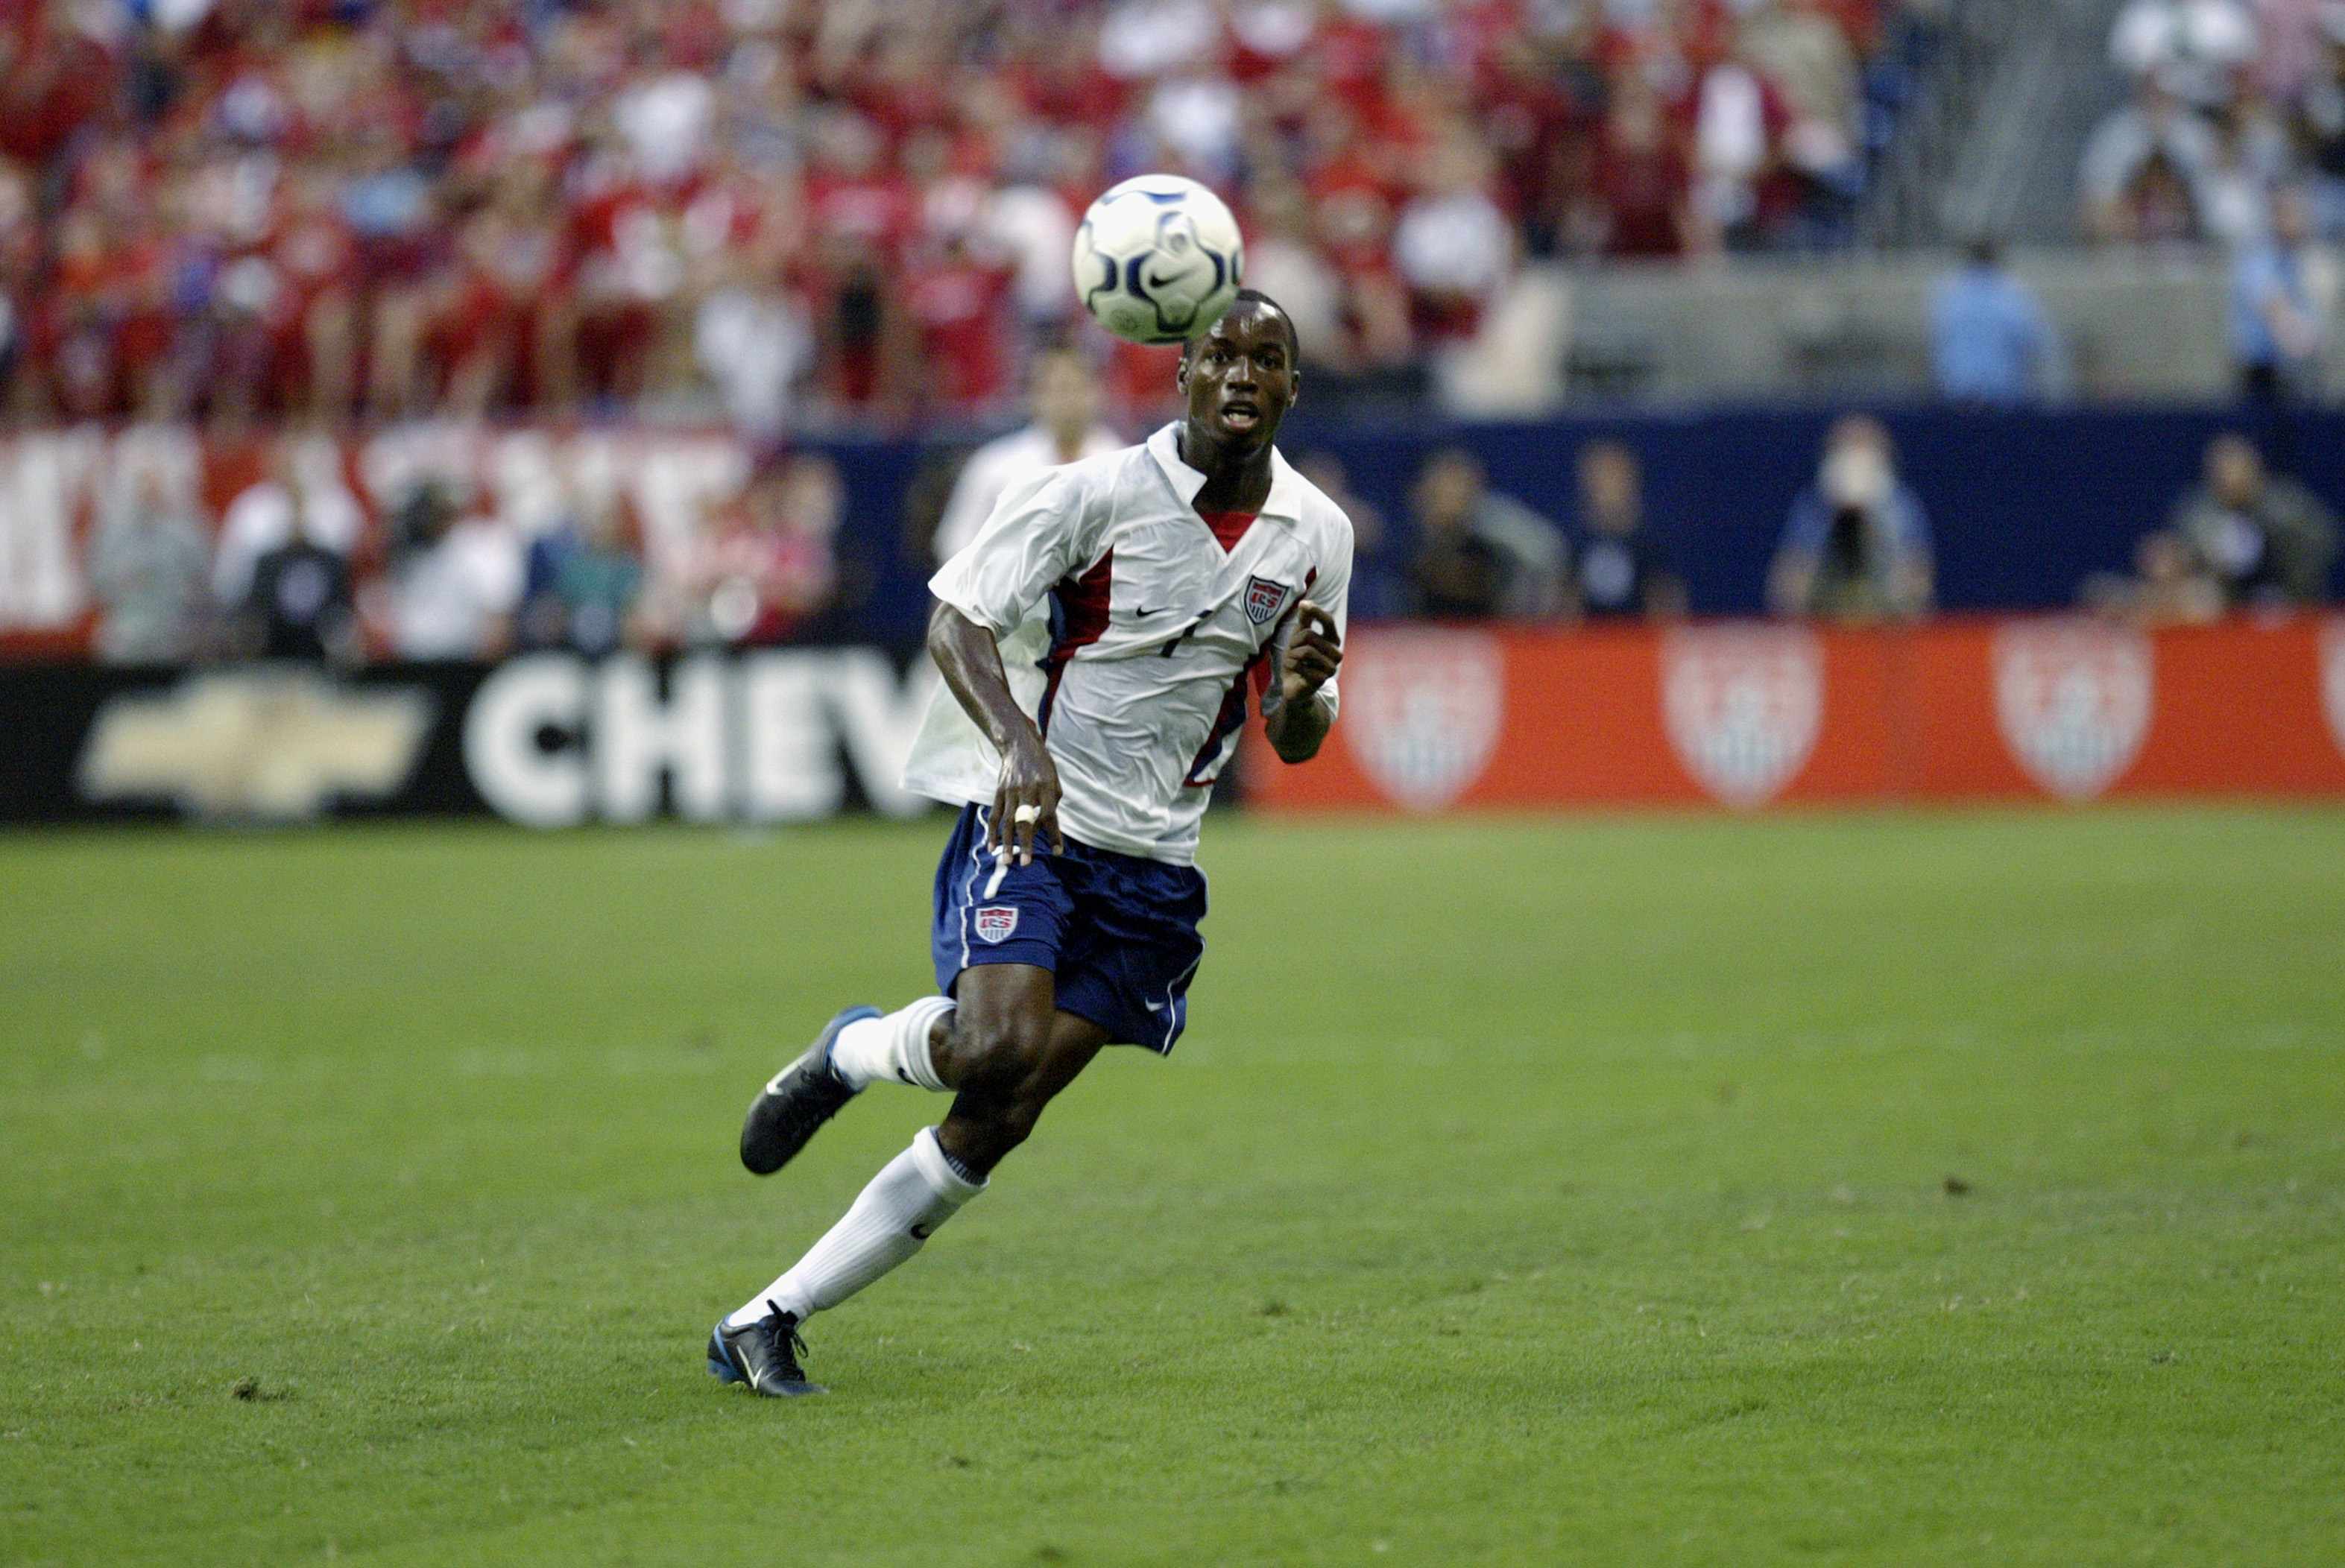 DaMarcus Beasley chases the ball